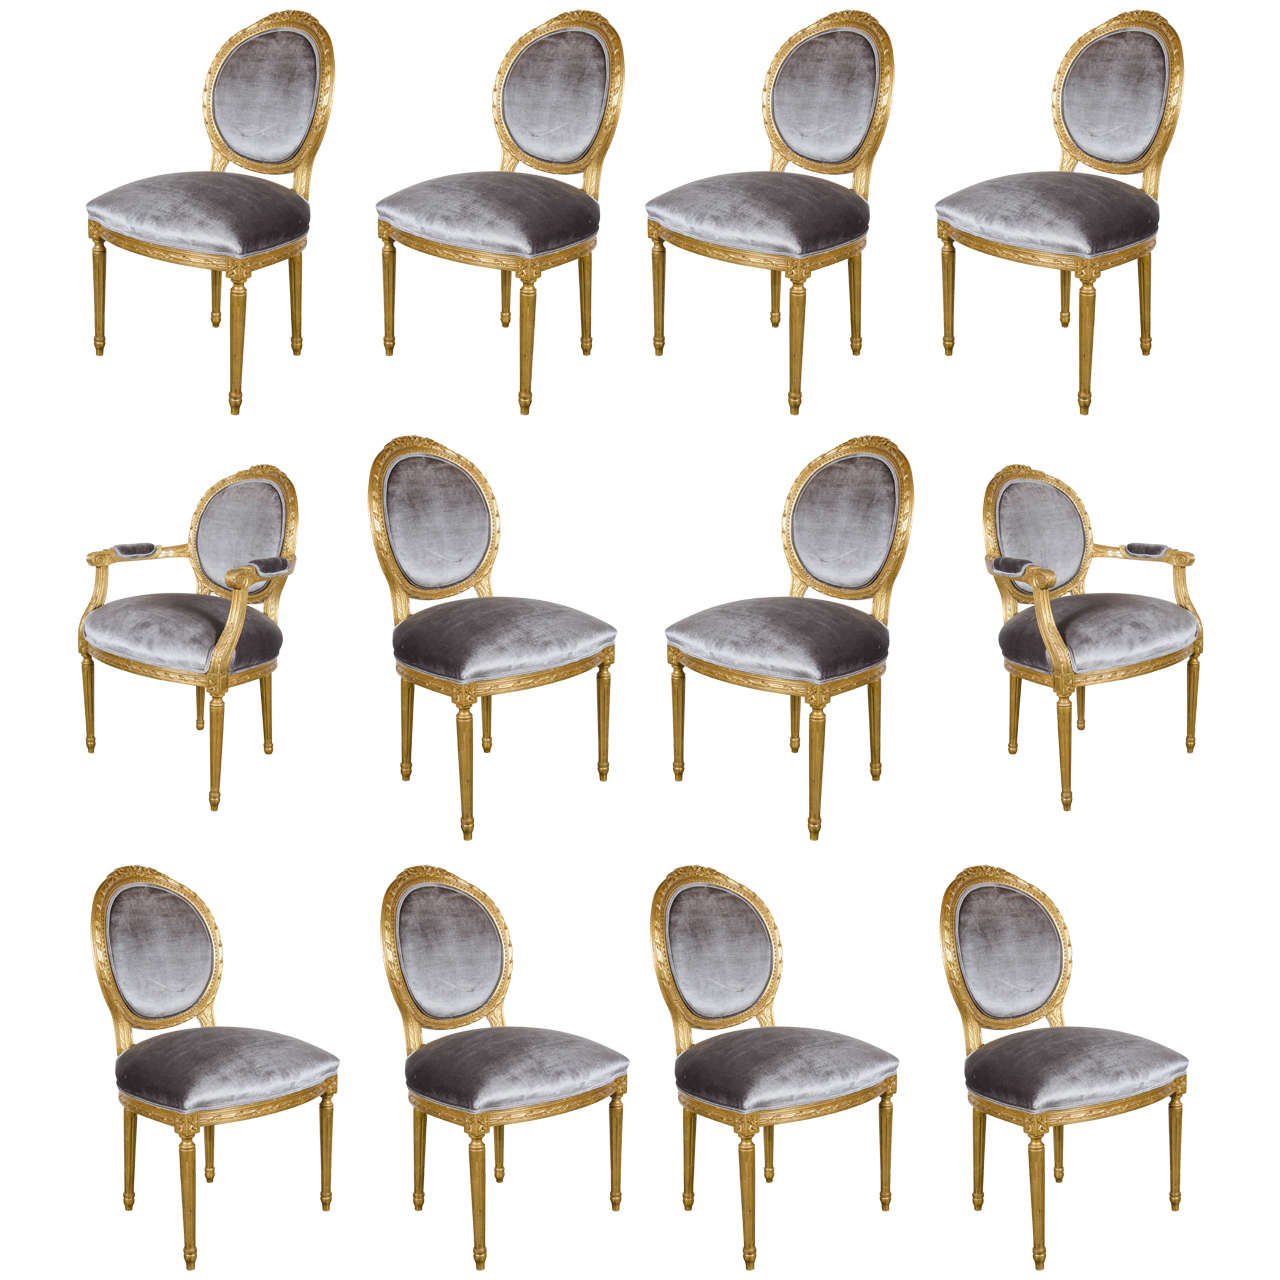 Awesome Set Of 12 Louis XIV Style Hand Carved 24 Karat Gilded Dining Chairs For